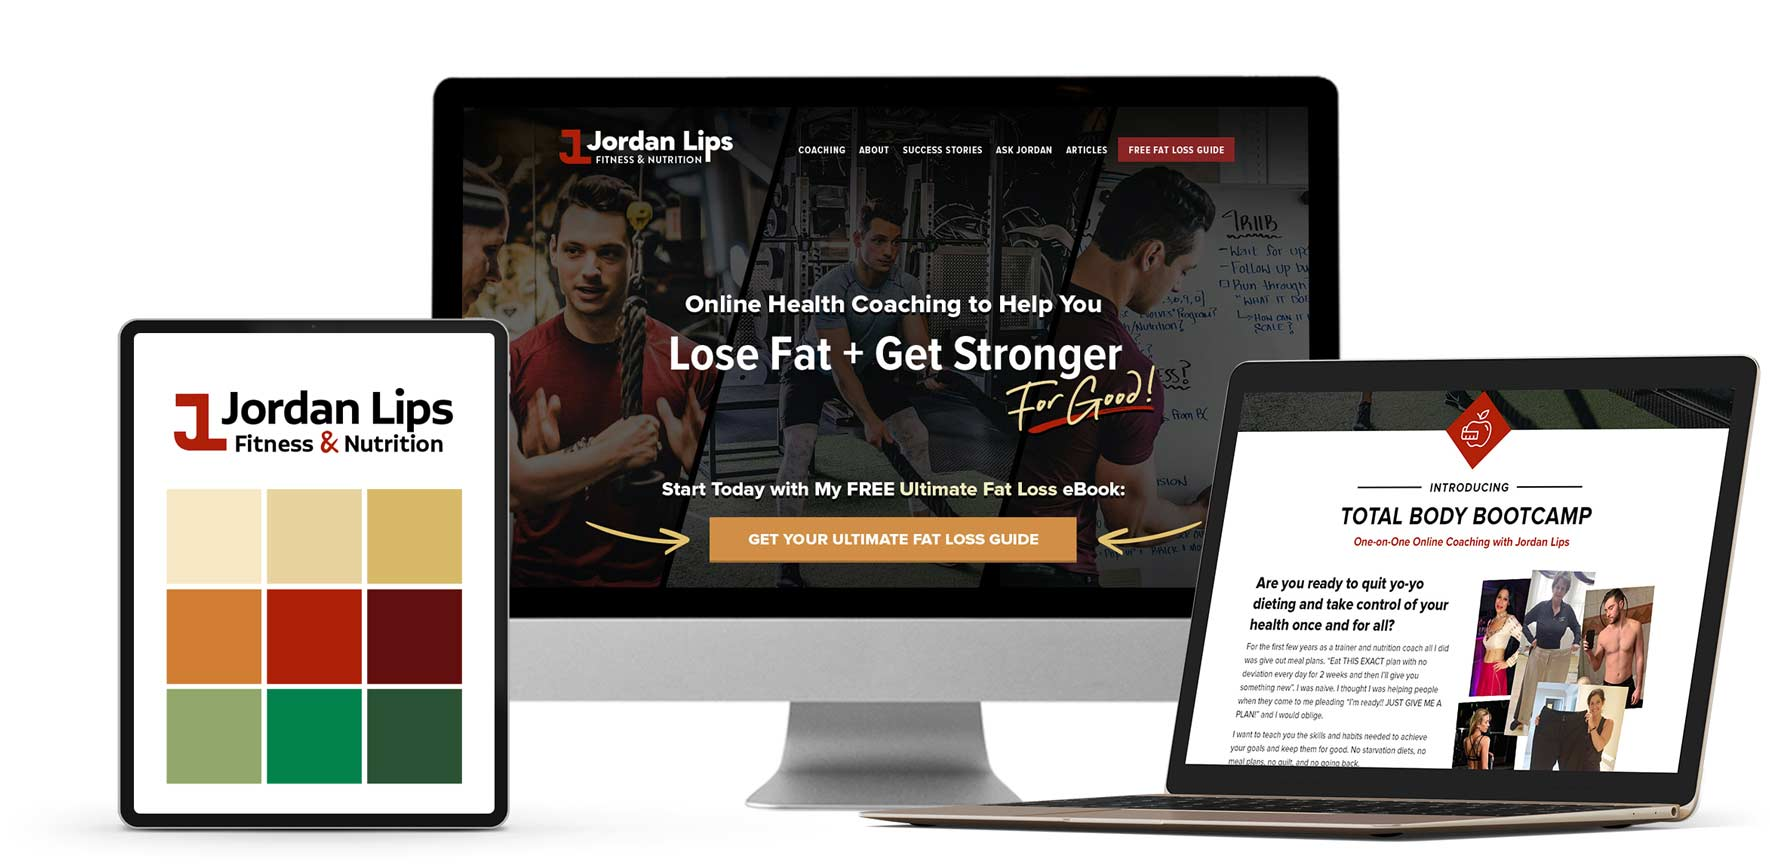 Branding and website design for online fitness coach Jordan Lips